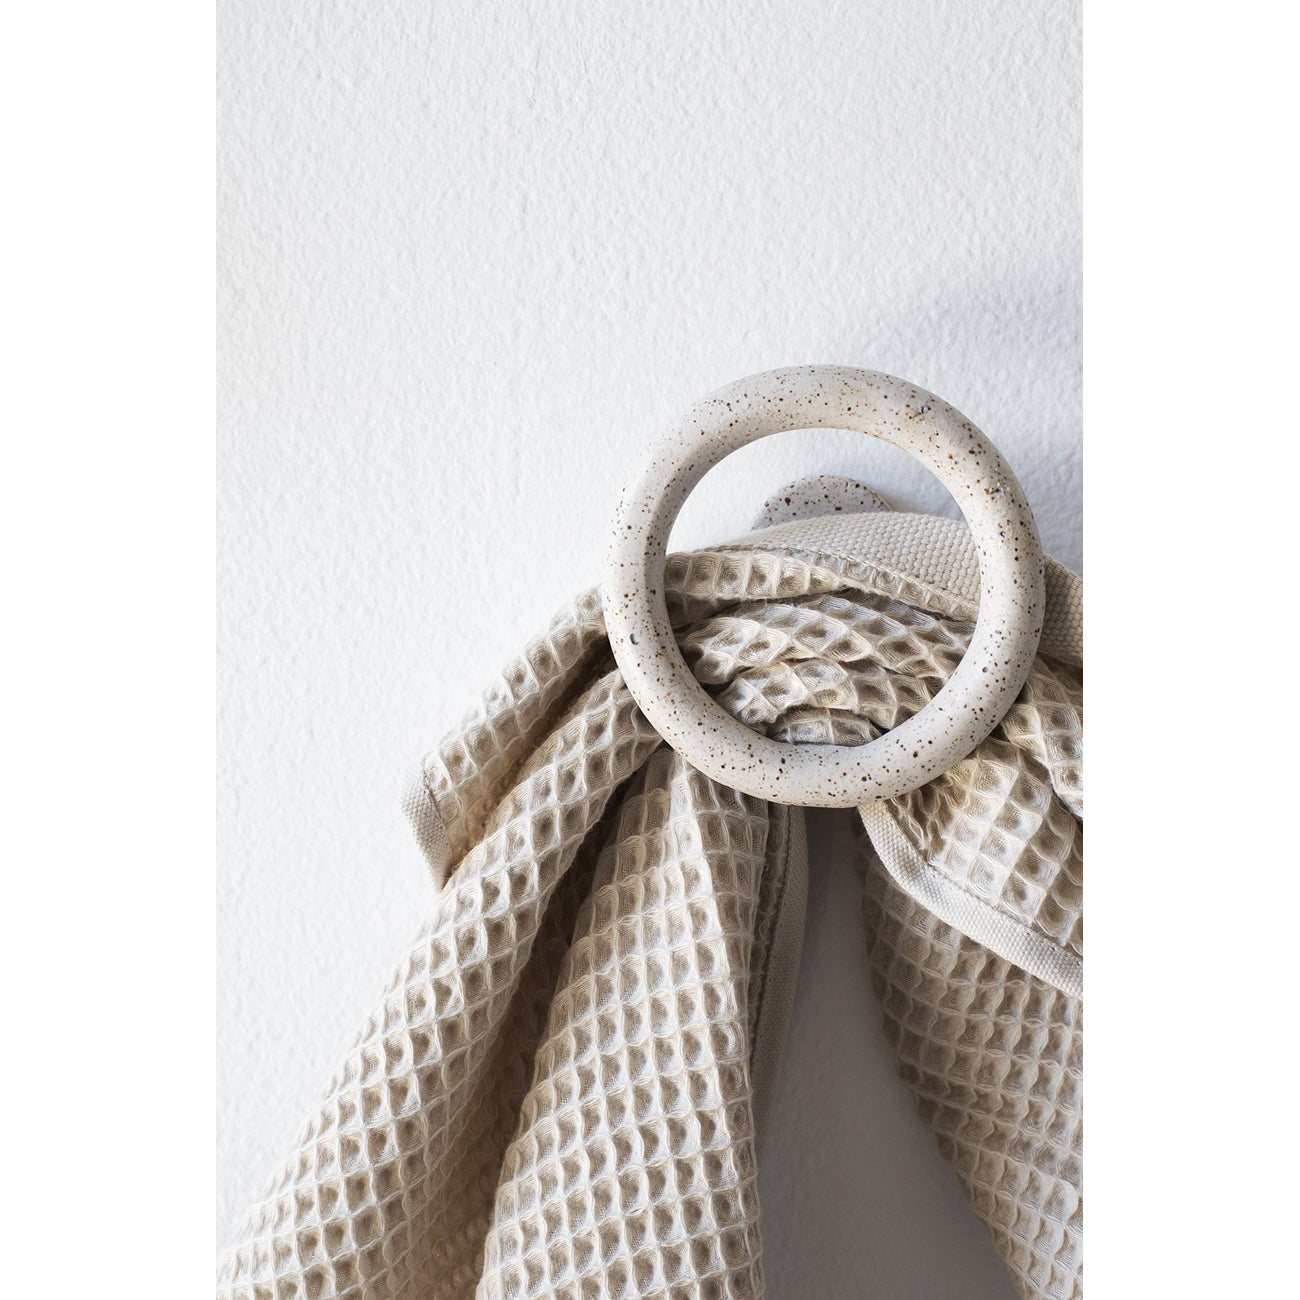 wall hook in speckled white